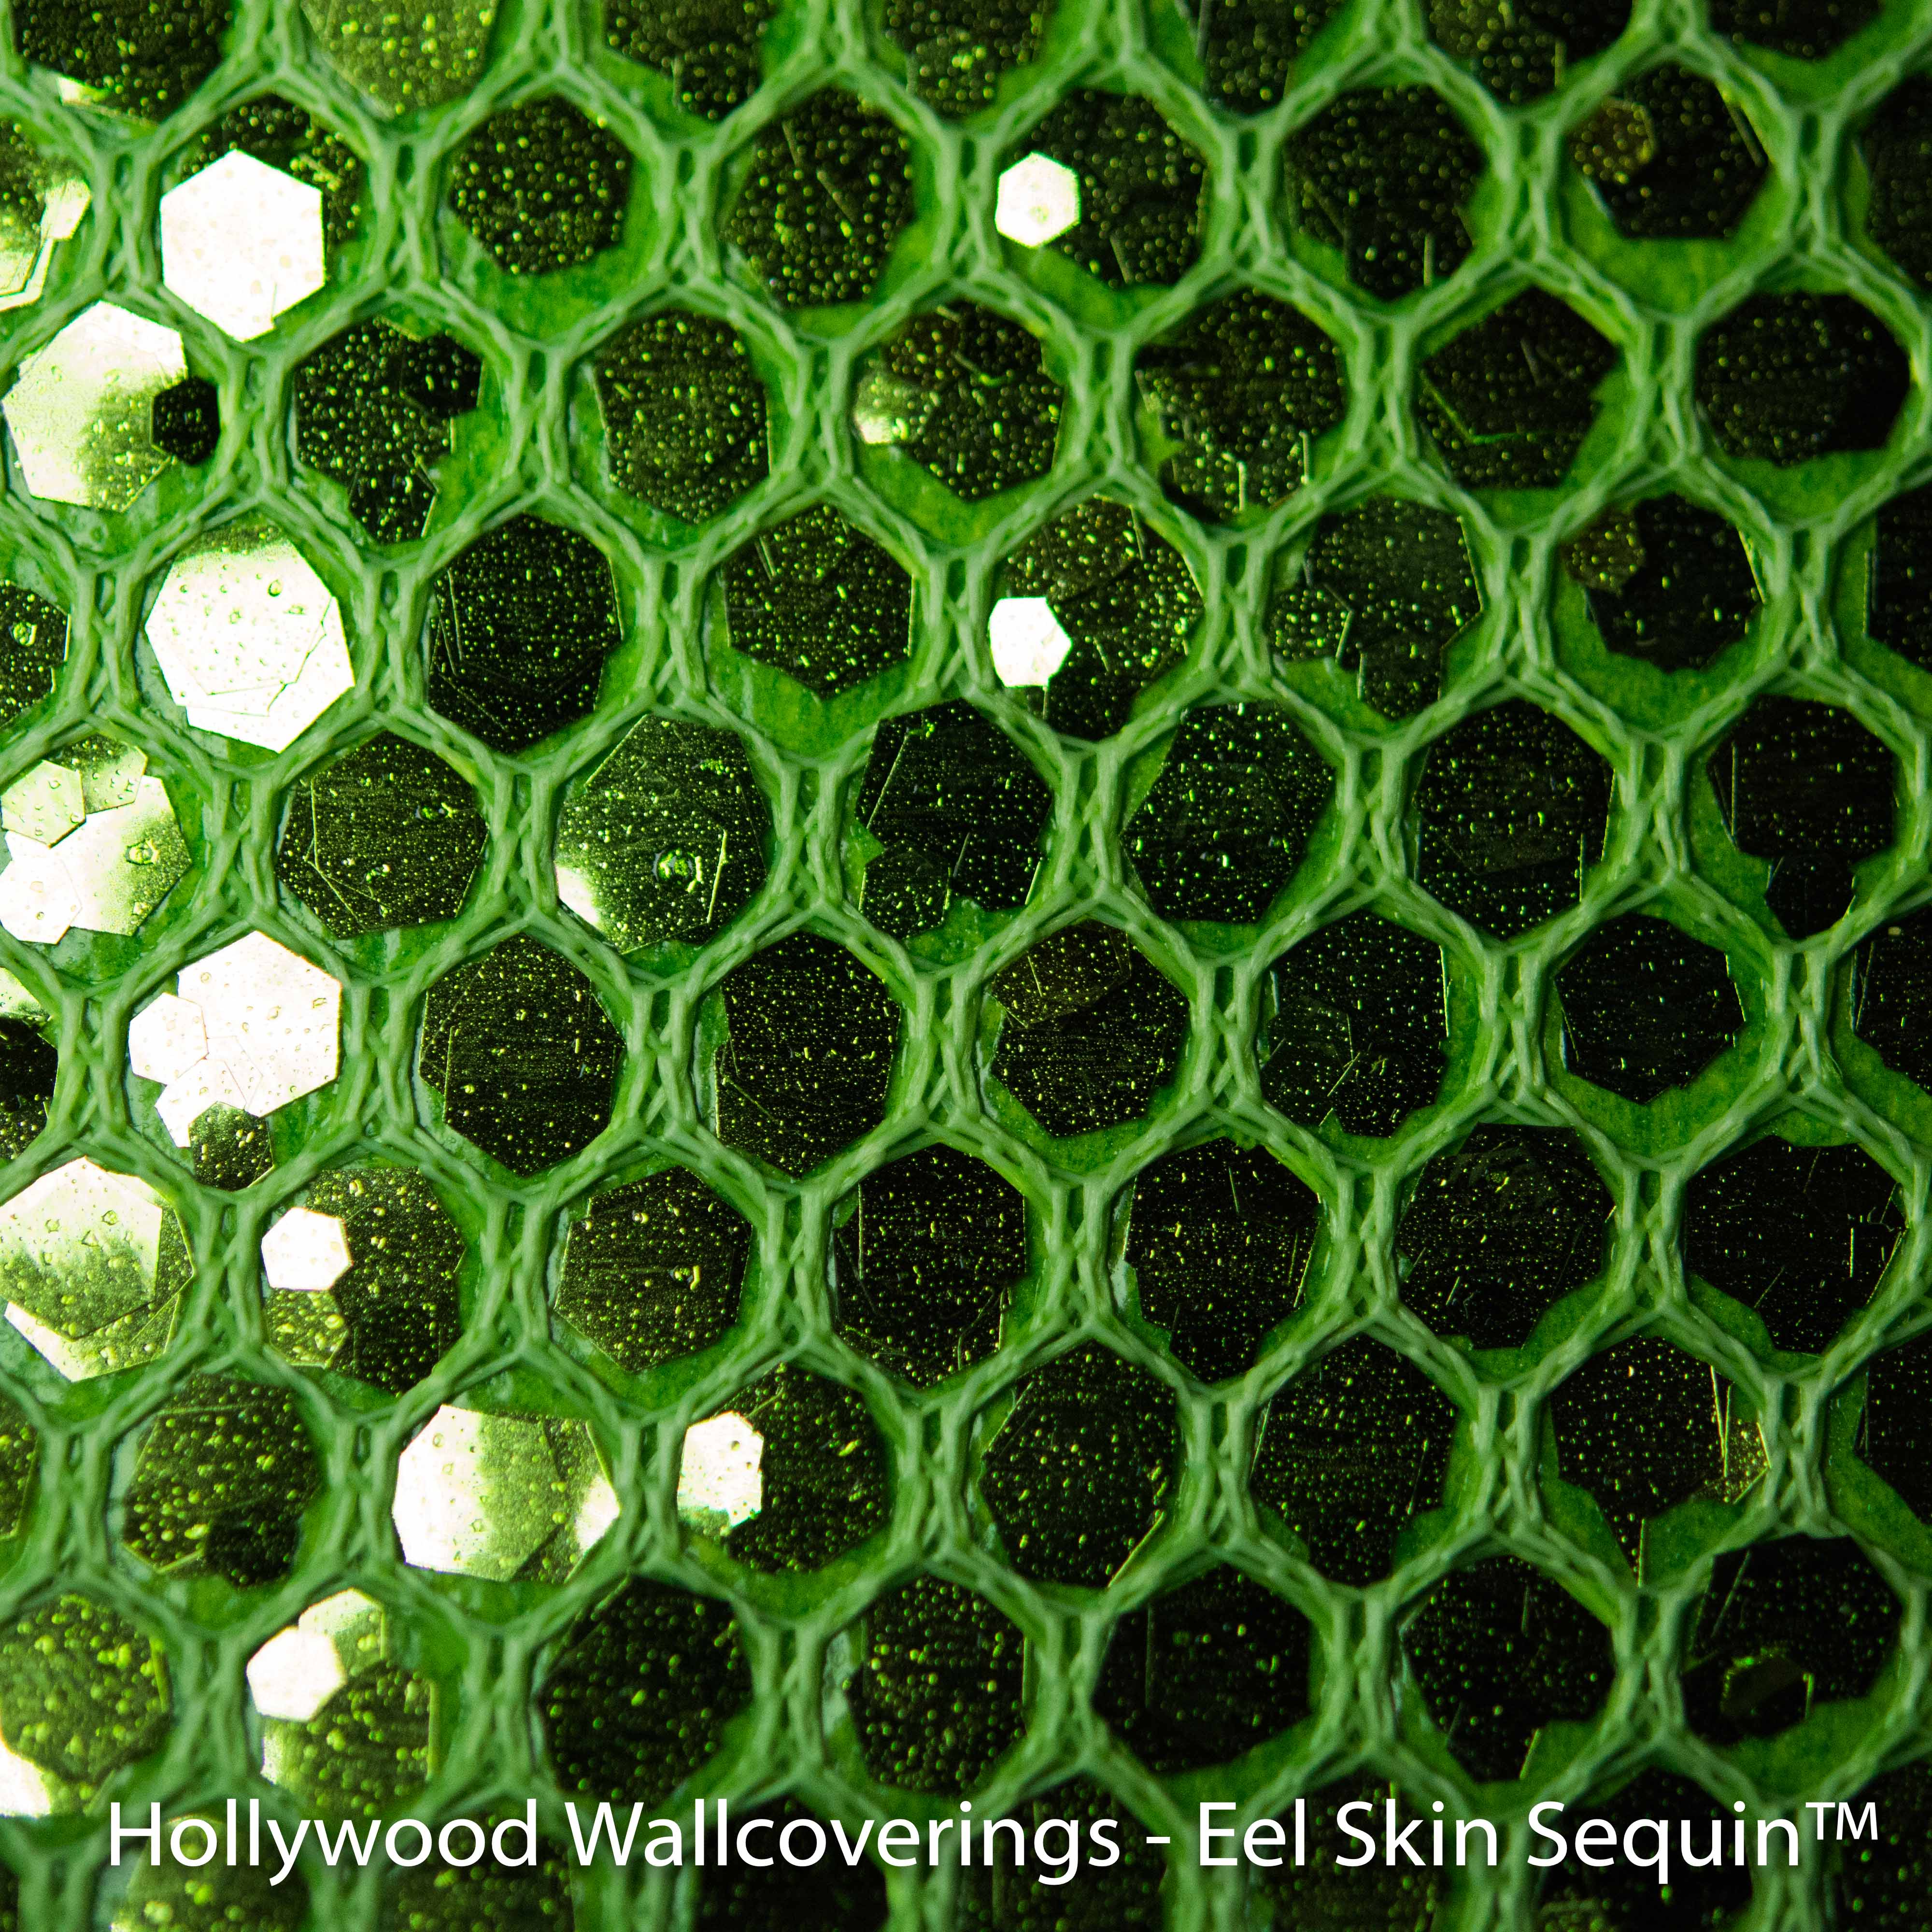 Eel-Skin-Sequin-GLM-Home-Color-Green-Emeralds-DesignerWallcoverings-com-Luxury-Wallp-wallpaper-wp4605610